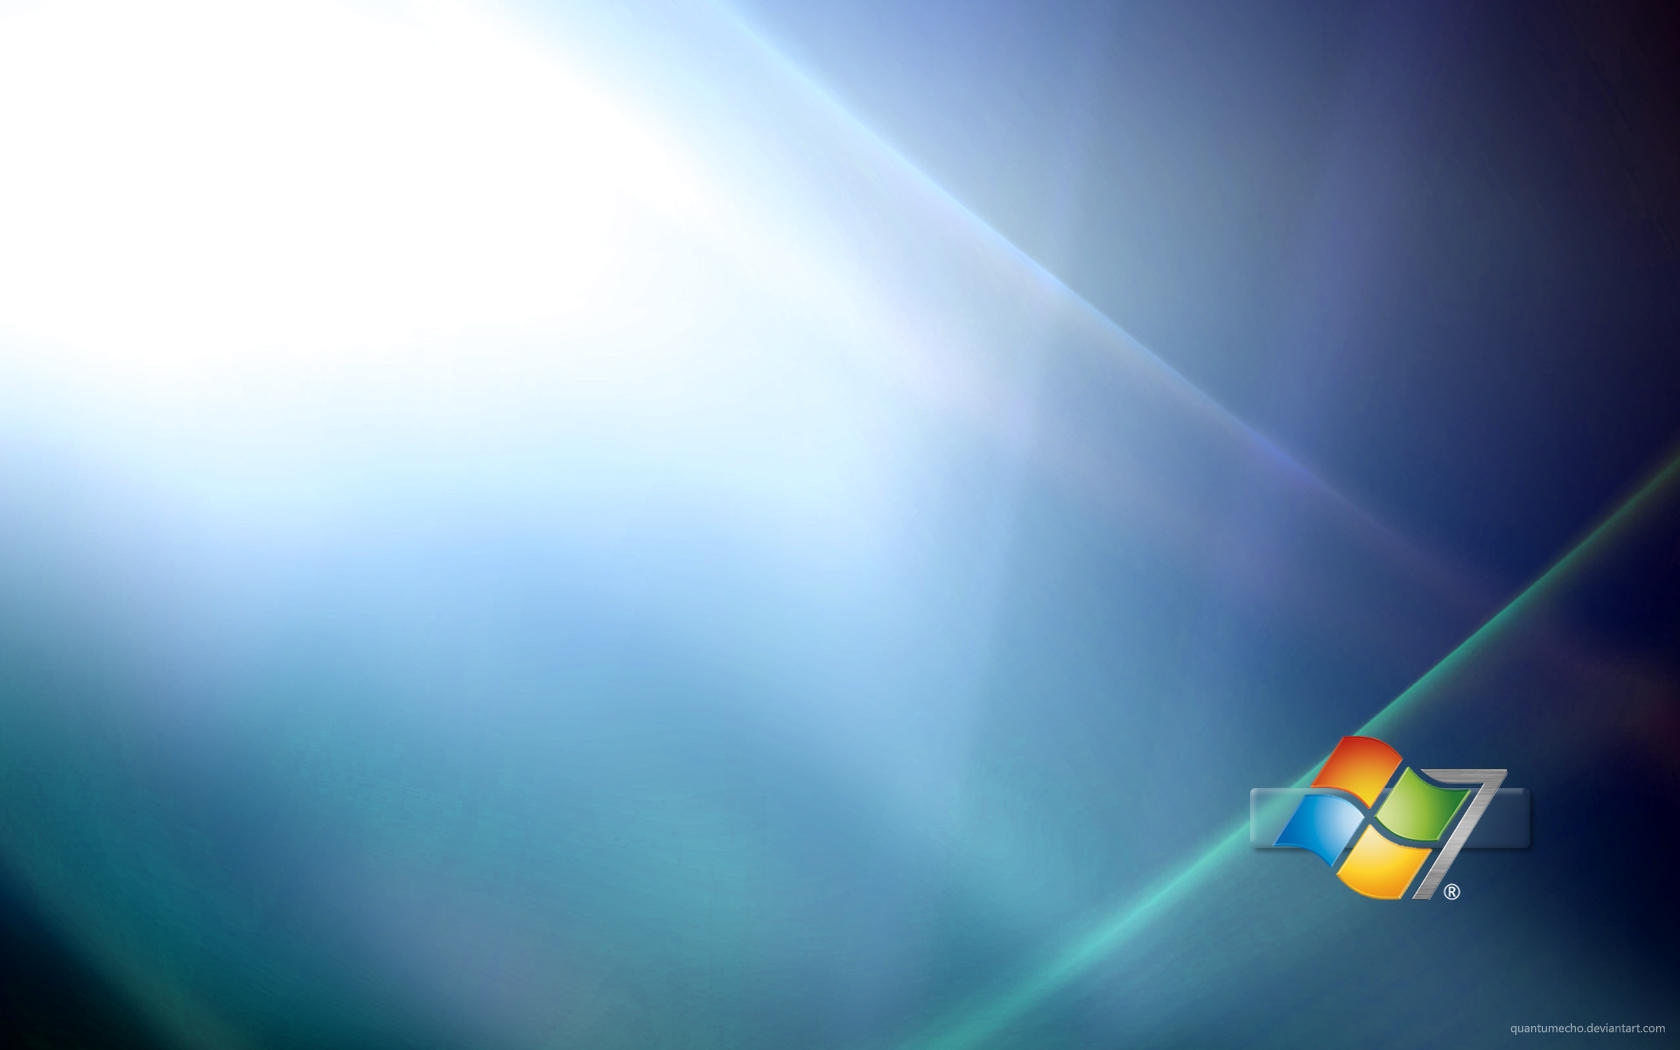 Windows 7 Widescreen Wallpaper by QuantumEcho